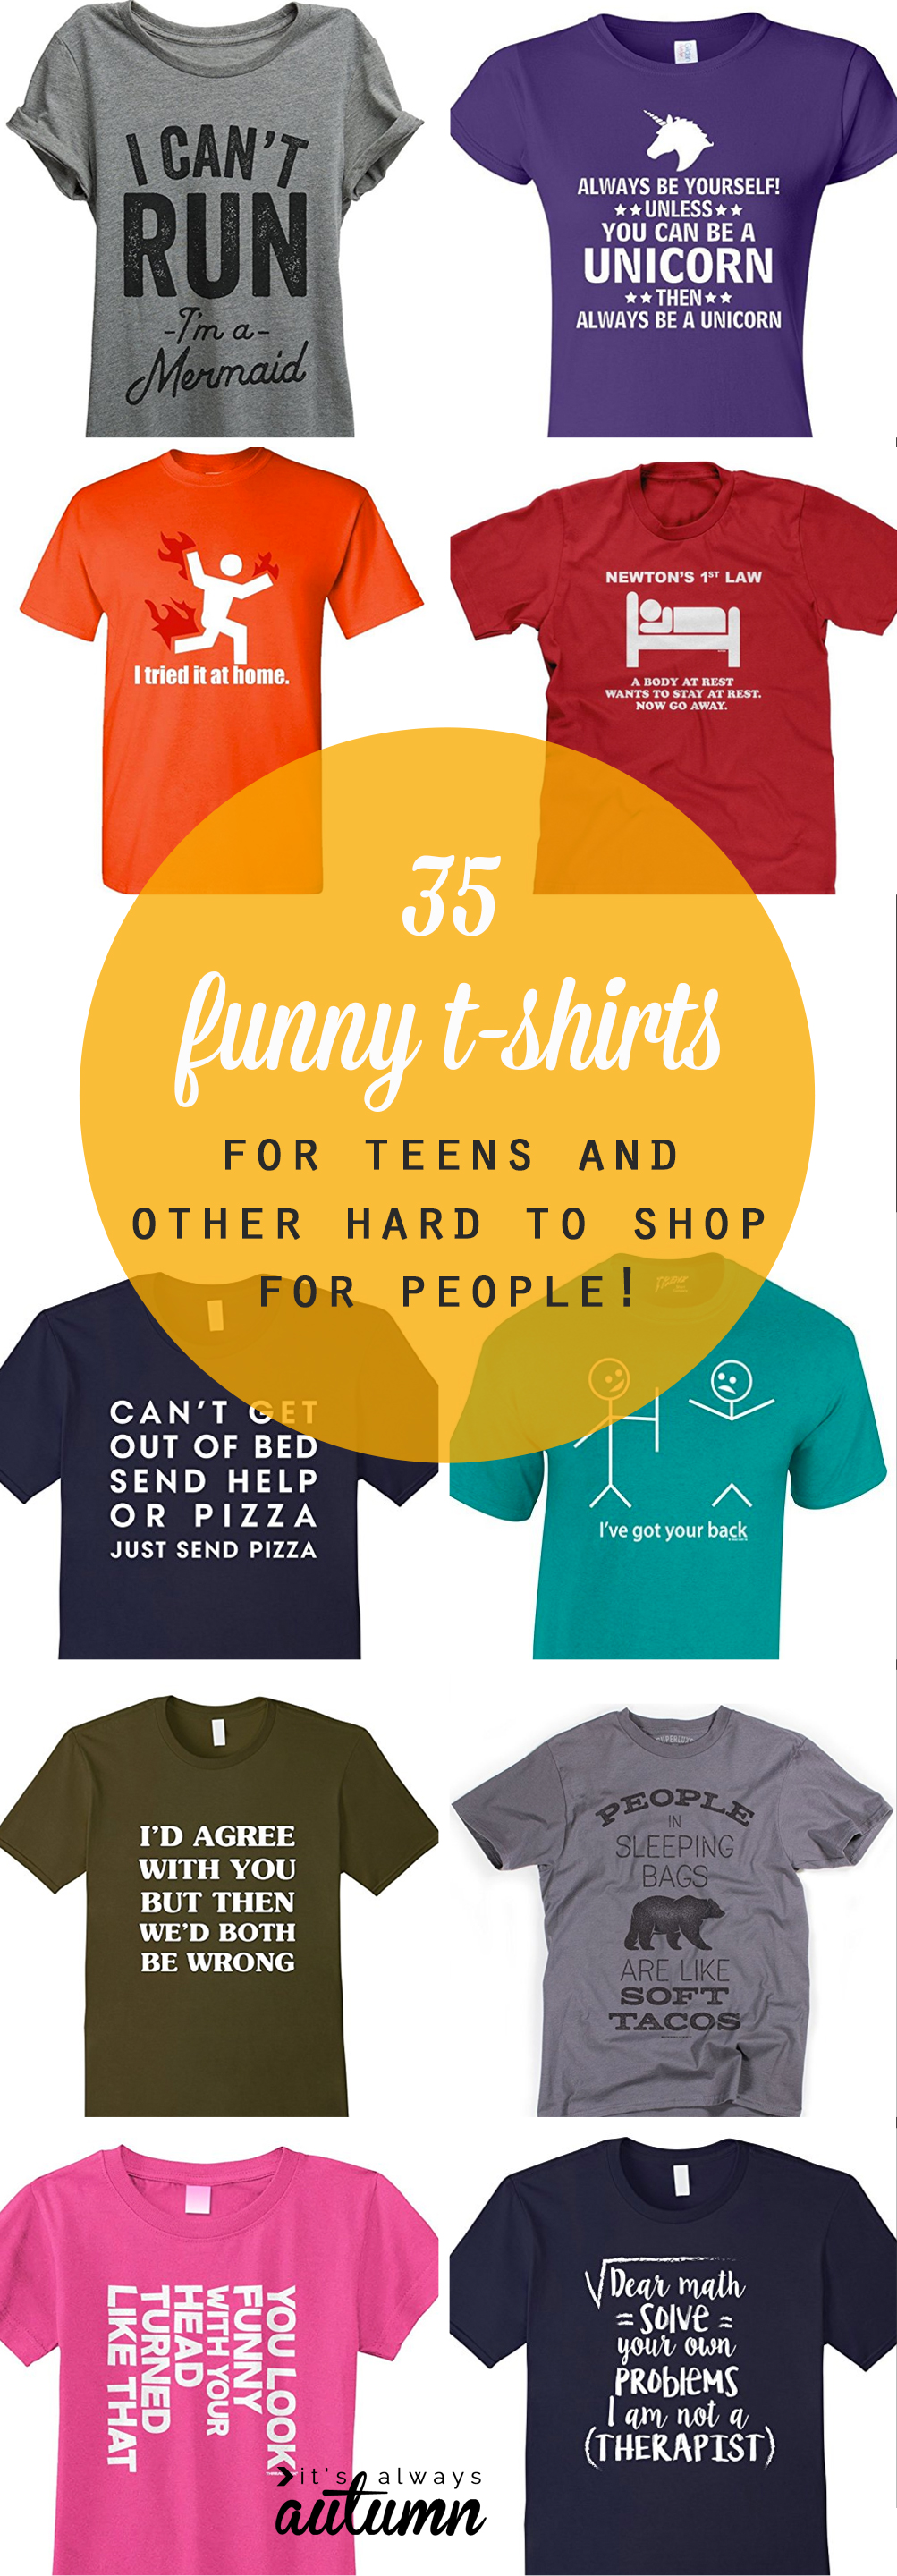 617c7f26 funny t-shirts for teens + other hard to shop for people - It's ...